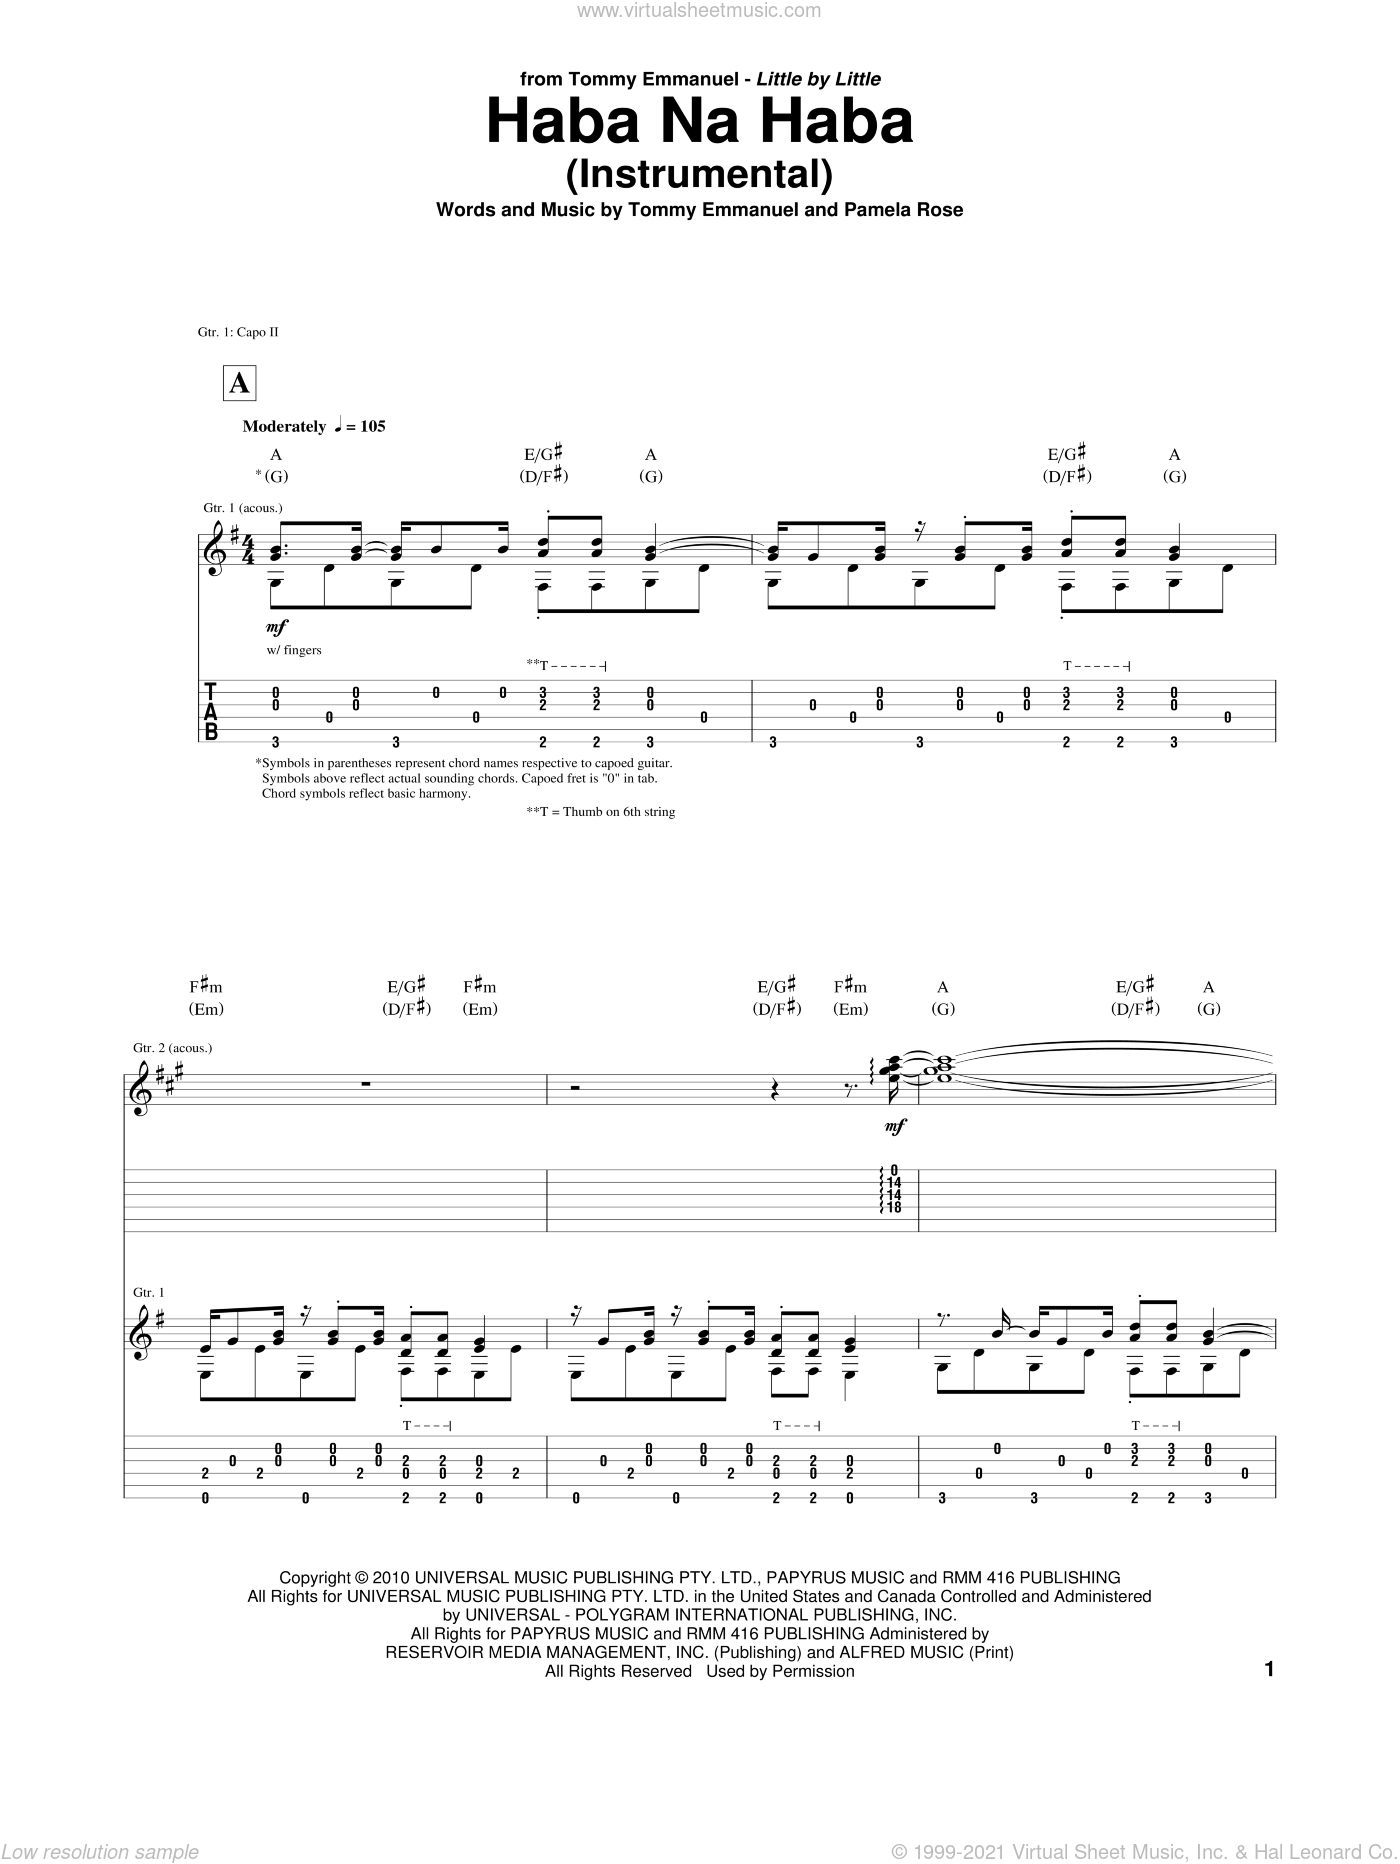 Haba Na Haba sheet music for guitar (tablature) by Pamela Rose